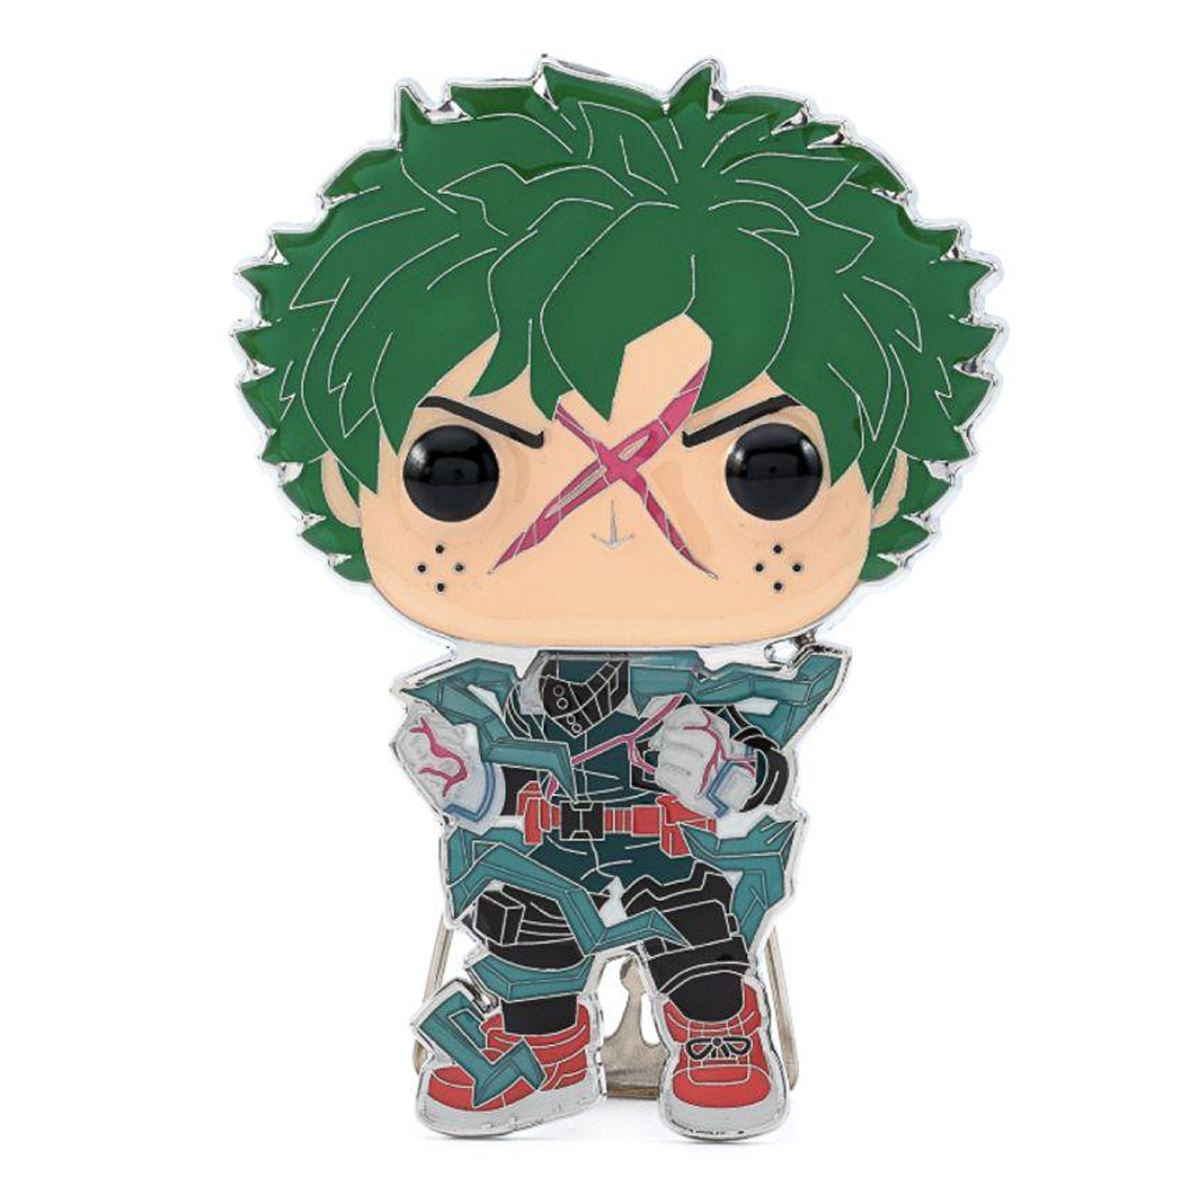 Deku (Izuku Midoraya) My Hero Academia Funko POP! Pin [PRE-ORDER] Pop! Pin Funko